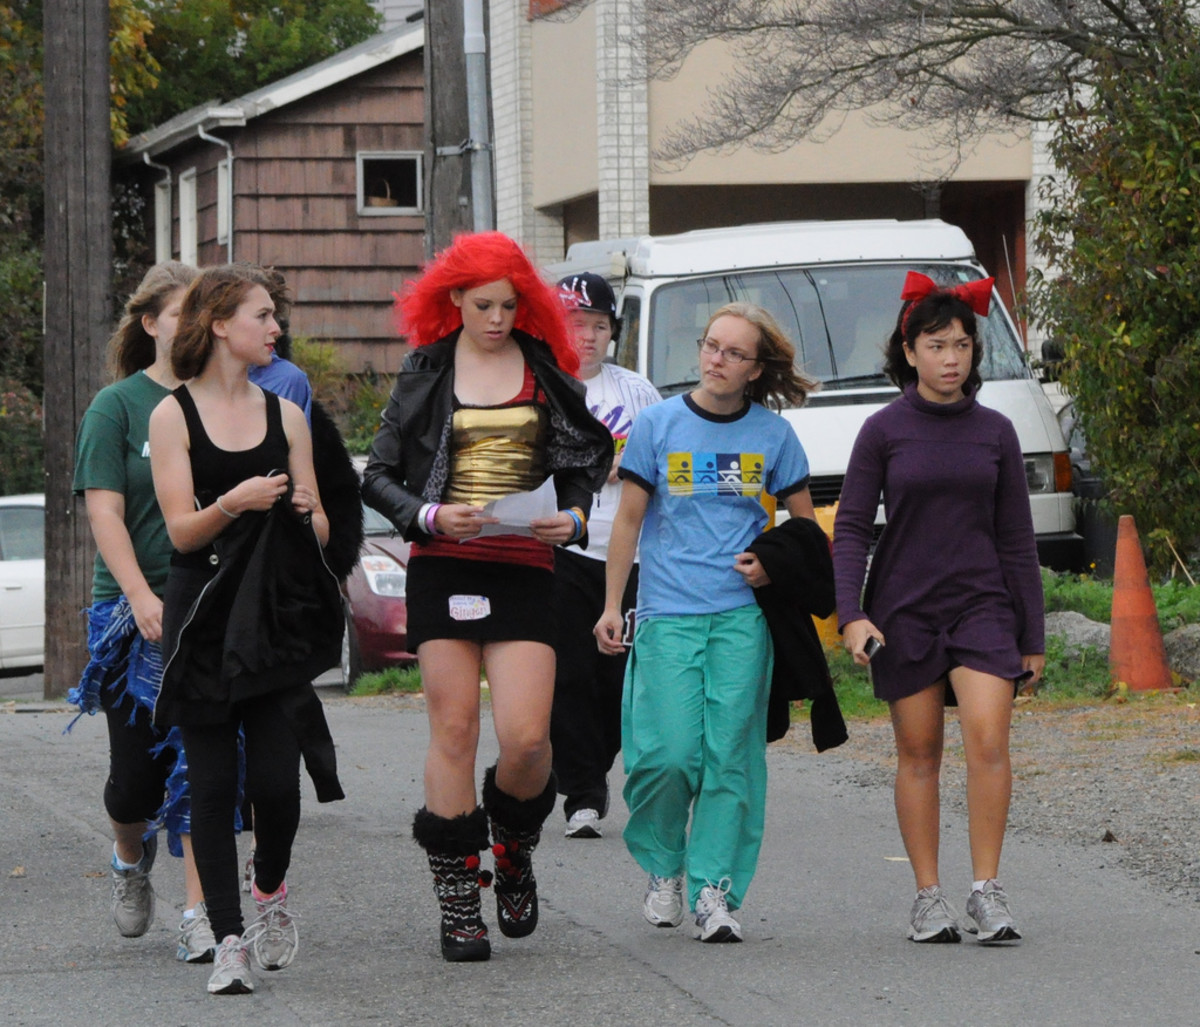 These Seattle teens are mostly appropriately dressed...minus the mini-skirt in the middle. Plus, most of these costumes look home-made and therefore will save $$.